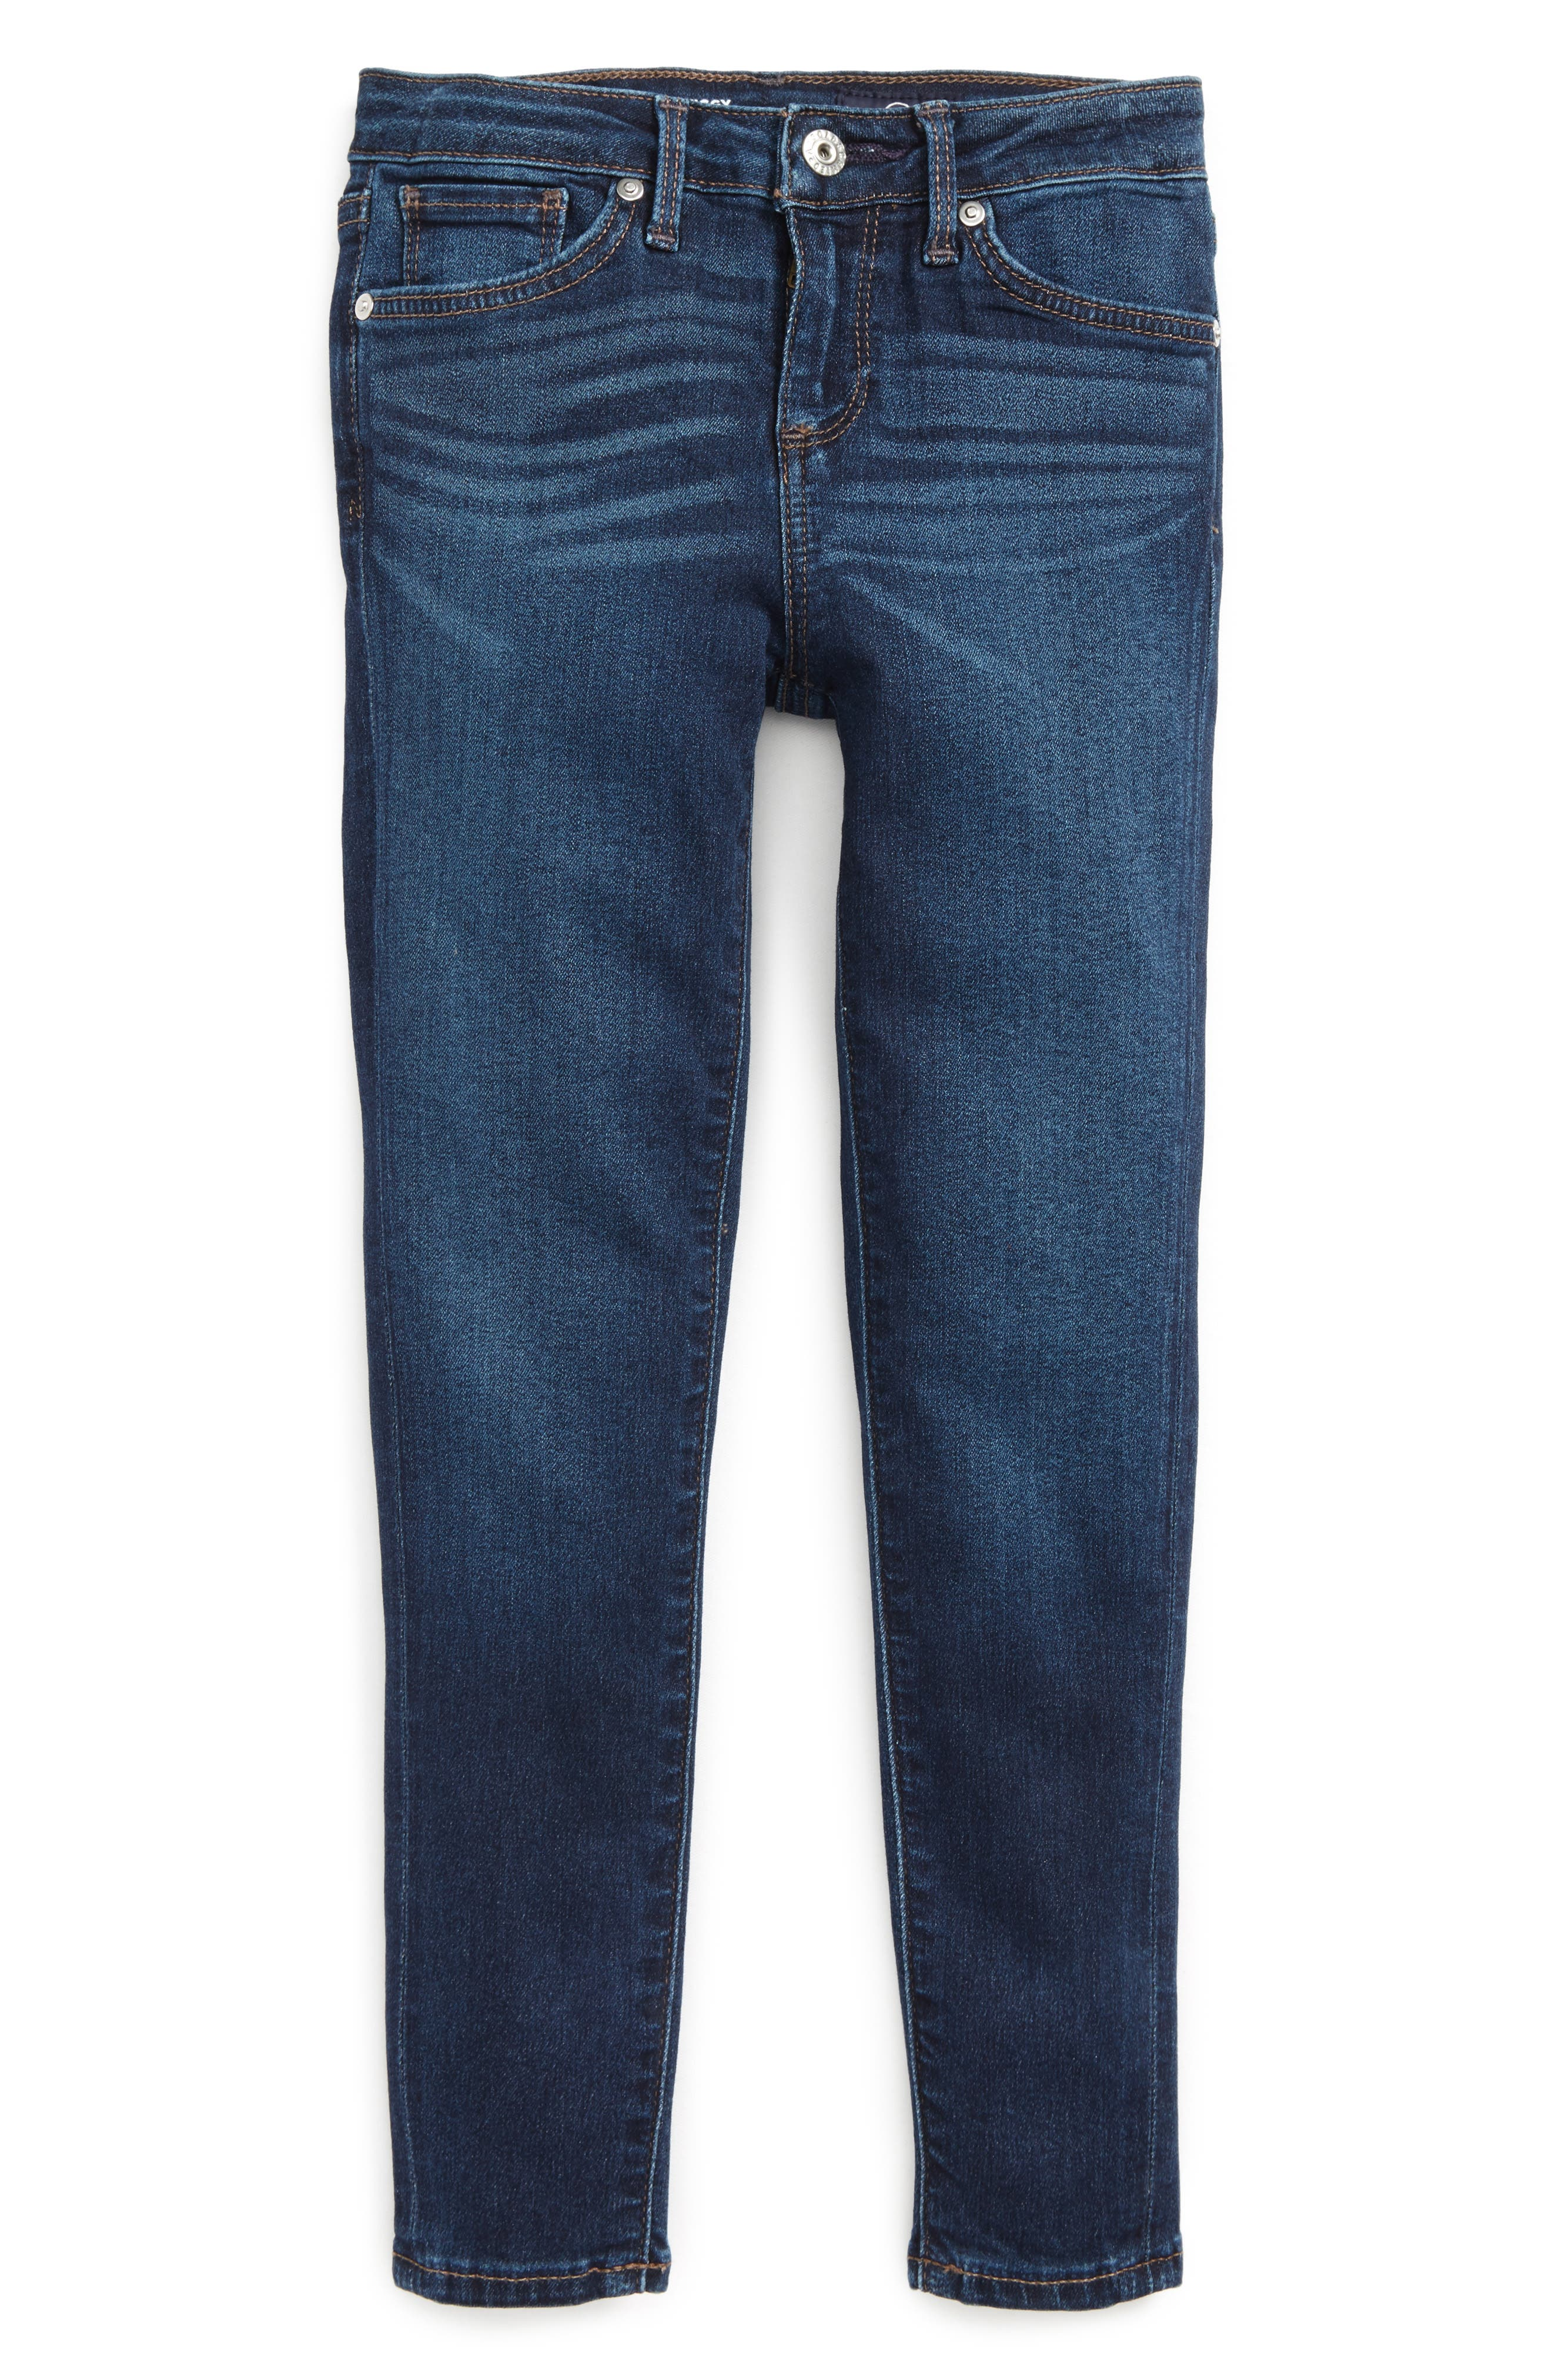 Twiggy Skinny Ankle Jeans,                             Main thumbnail 1, color,                             423